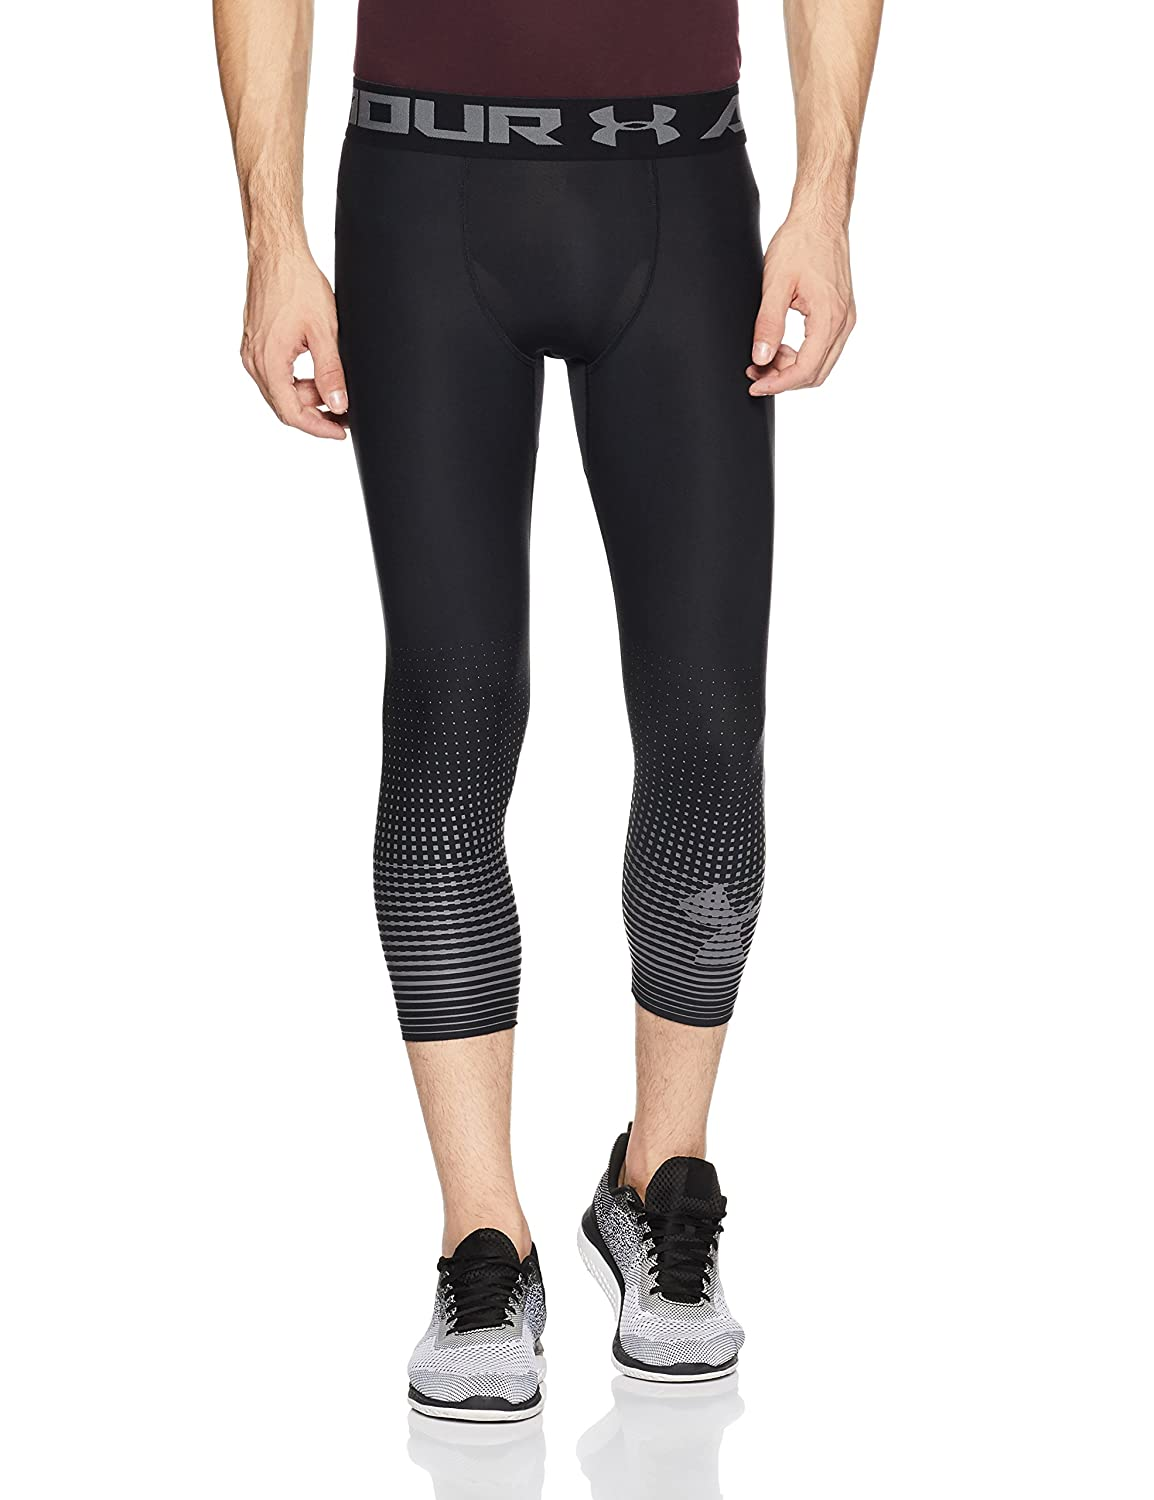 6cdc3d4585 Under Armour Men's Hg Comp Graphic 3/4 Legging: Amazon.co.uk: Clothing